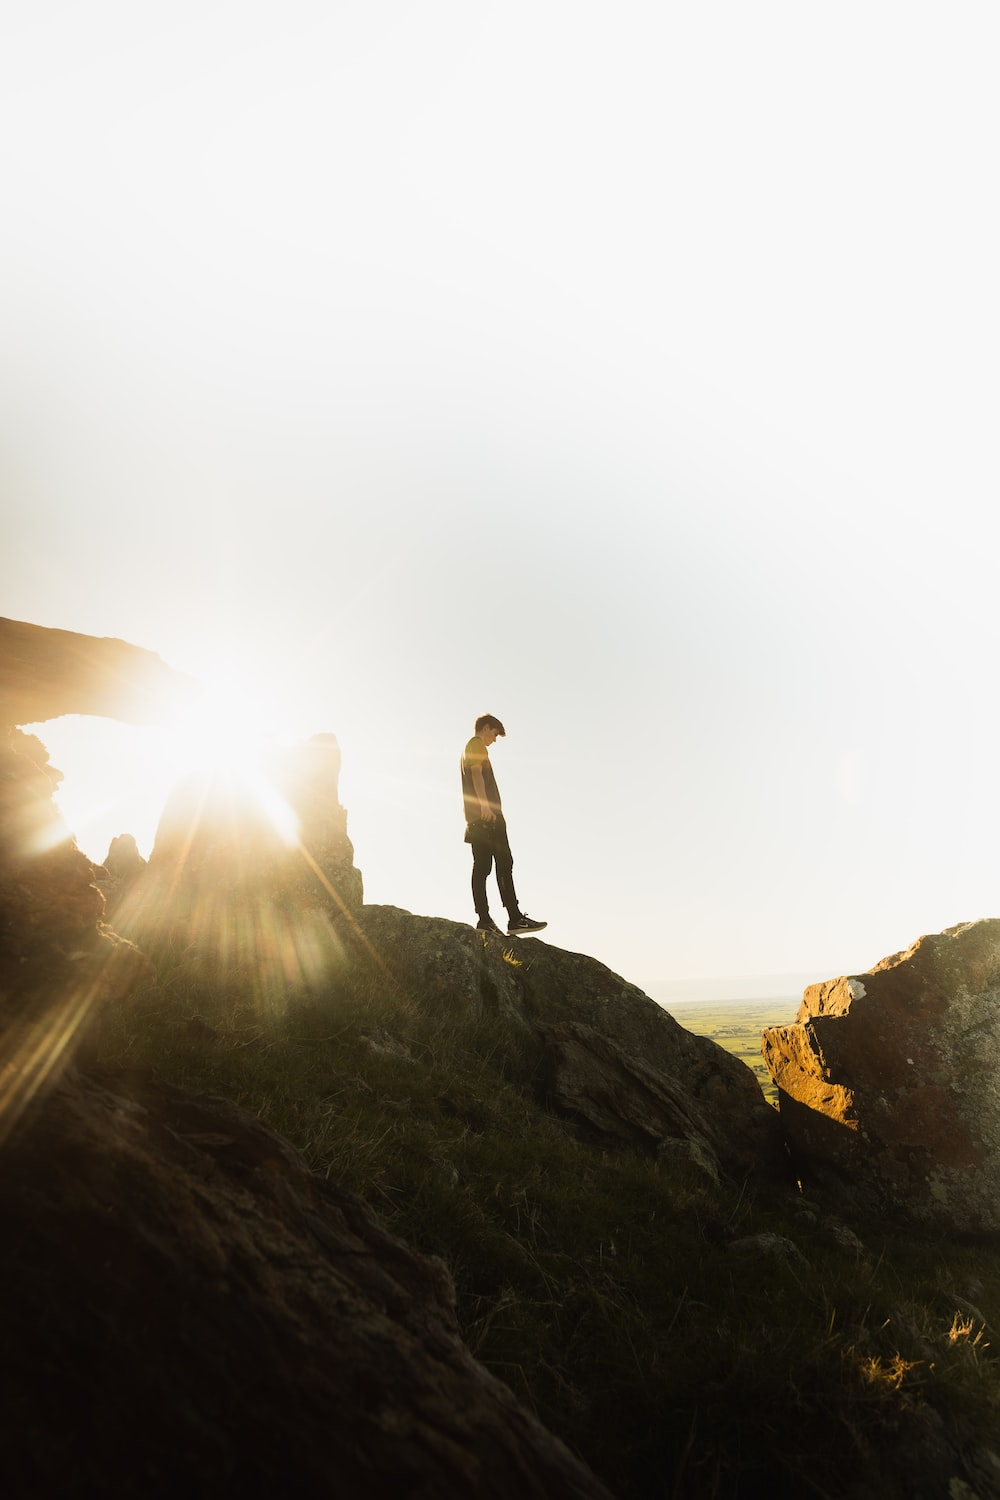 man in white shirt standing on rock formation during daytime